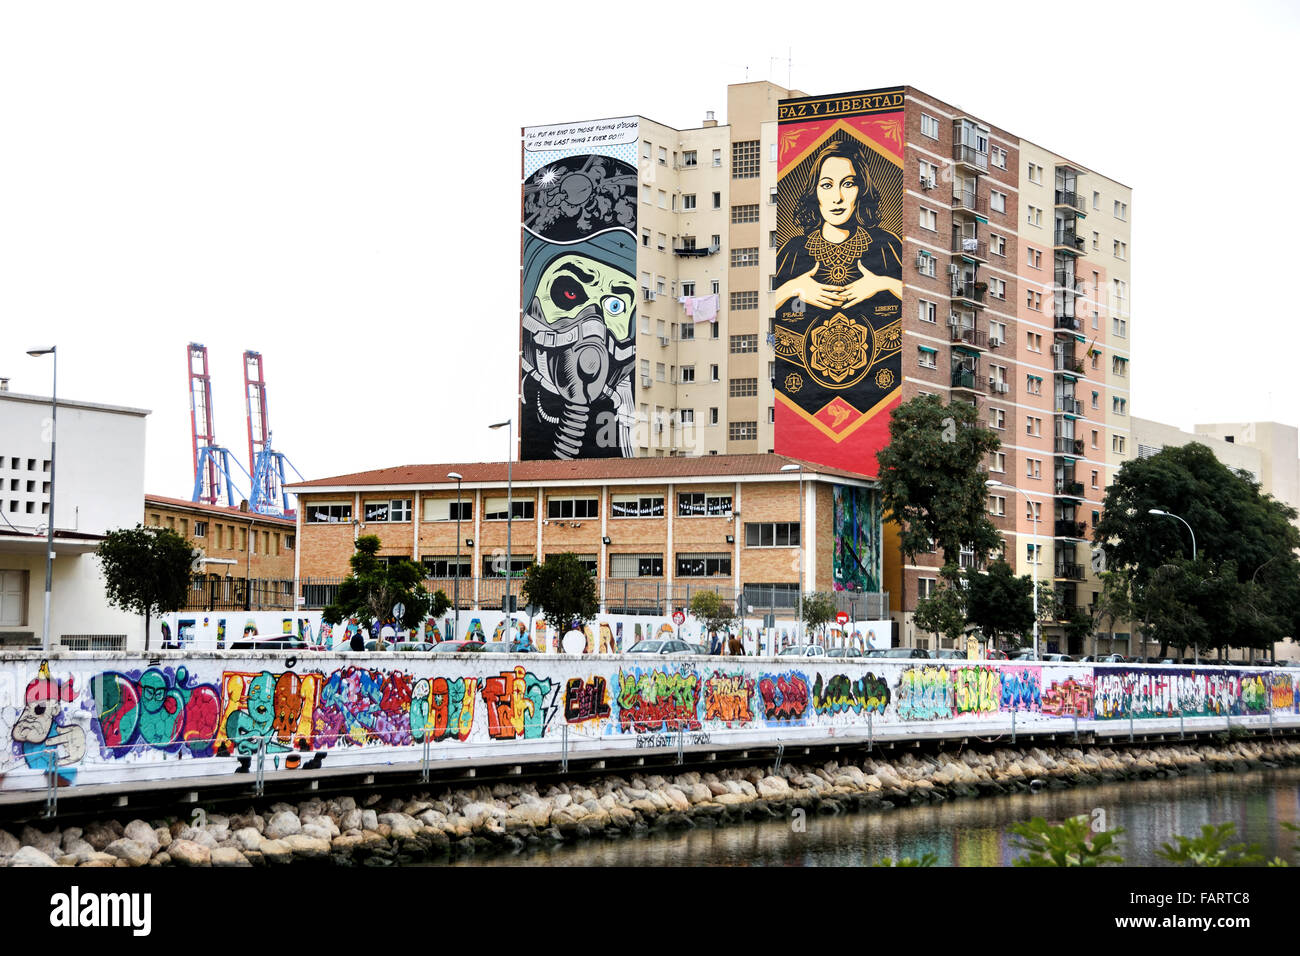 Malaga Spanish Spain Andalusia ( Mural paintings of D Face (l) and Obey Shepard Fairey (r) Soho art district ) - Stock Image